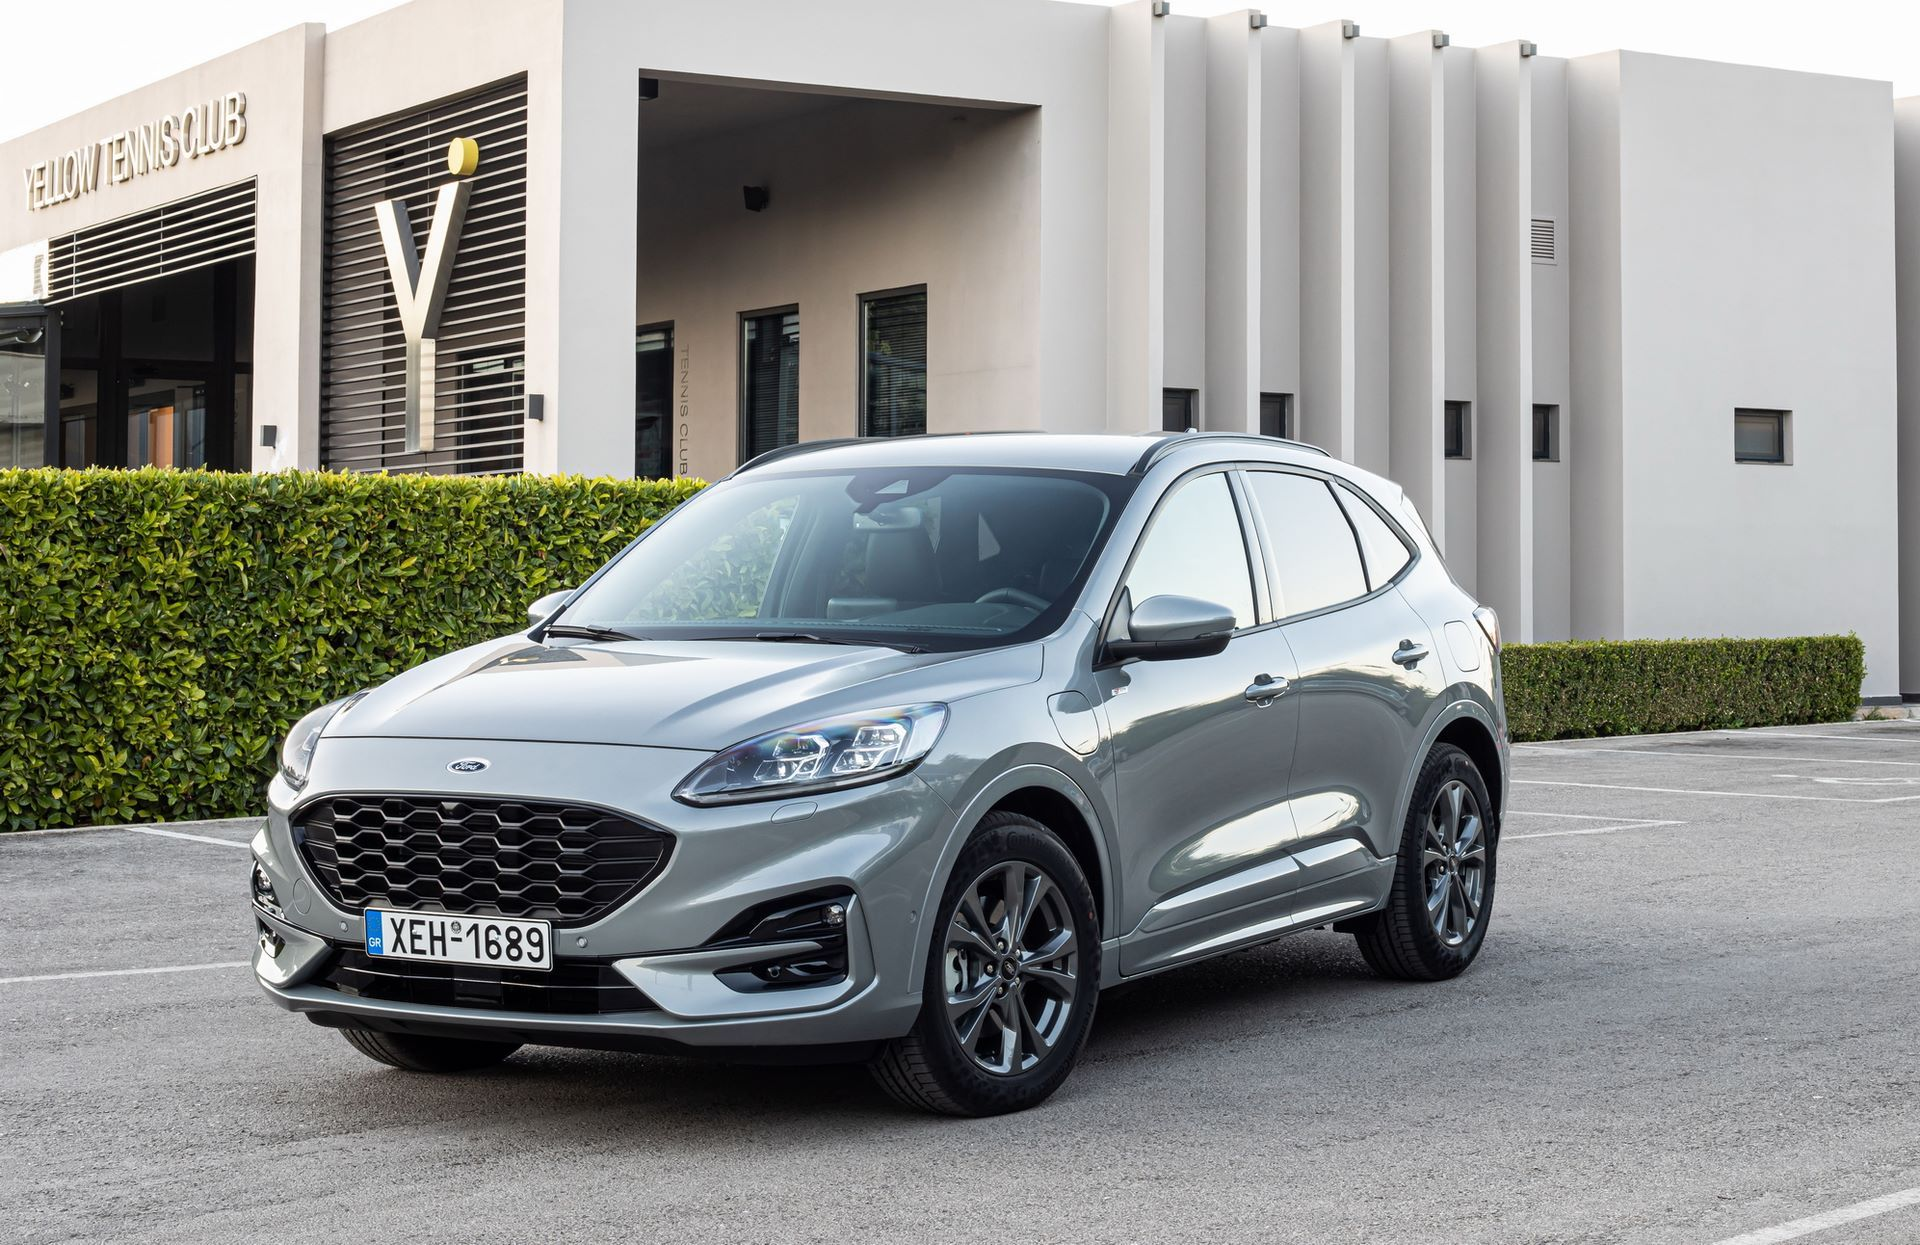 Ford-Kuga-2020-Greek-137